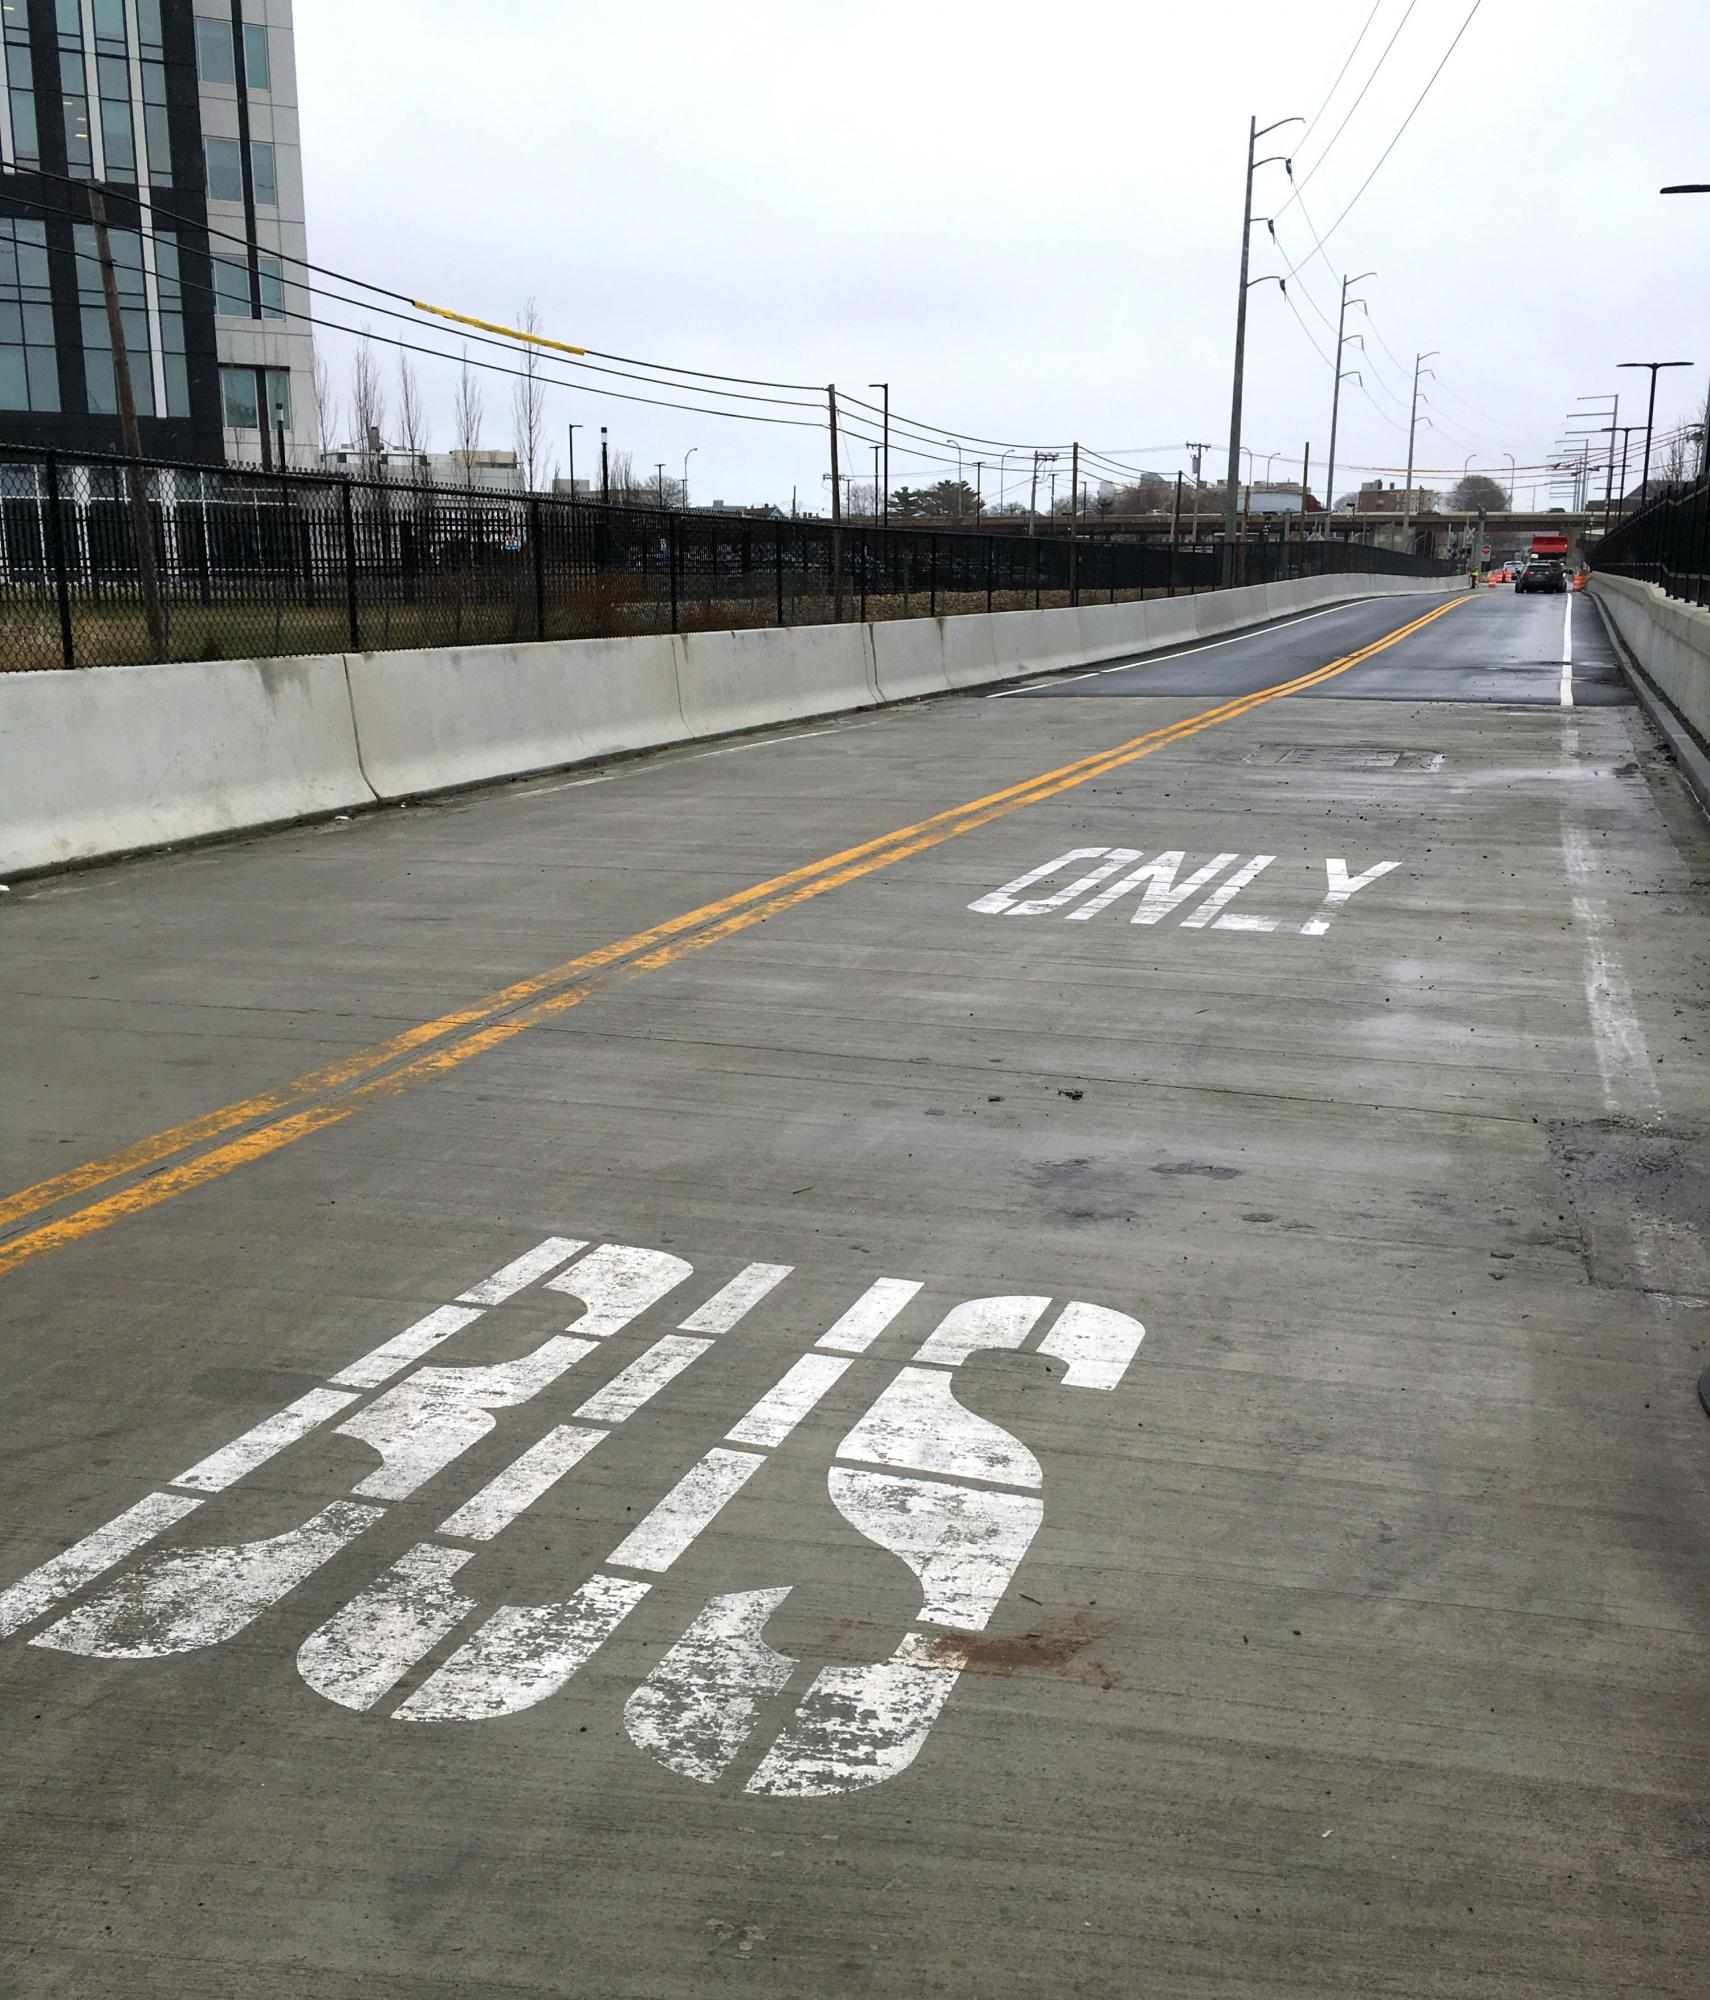 Bus-only lanes